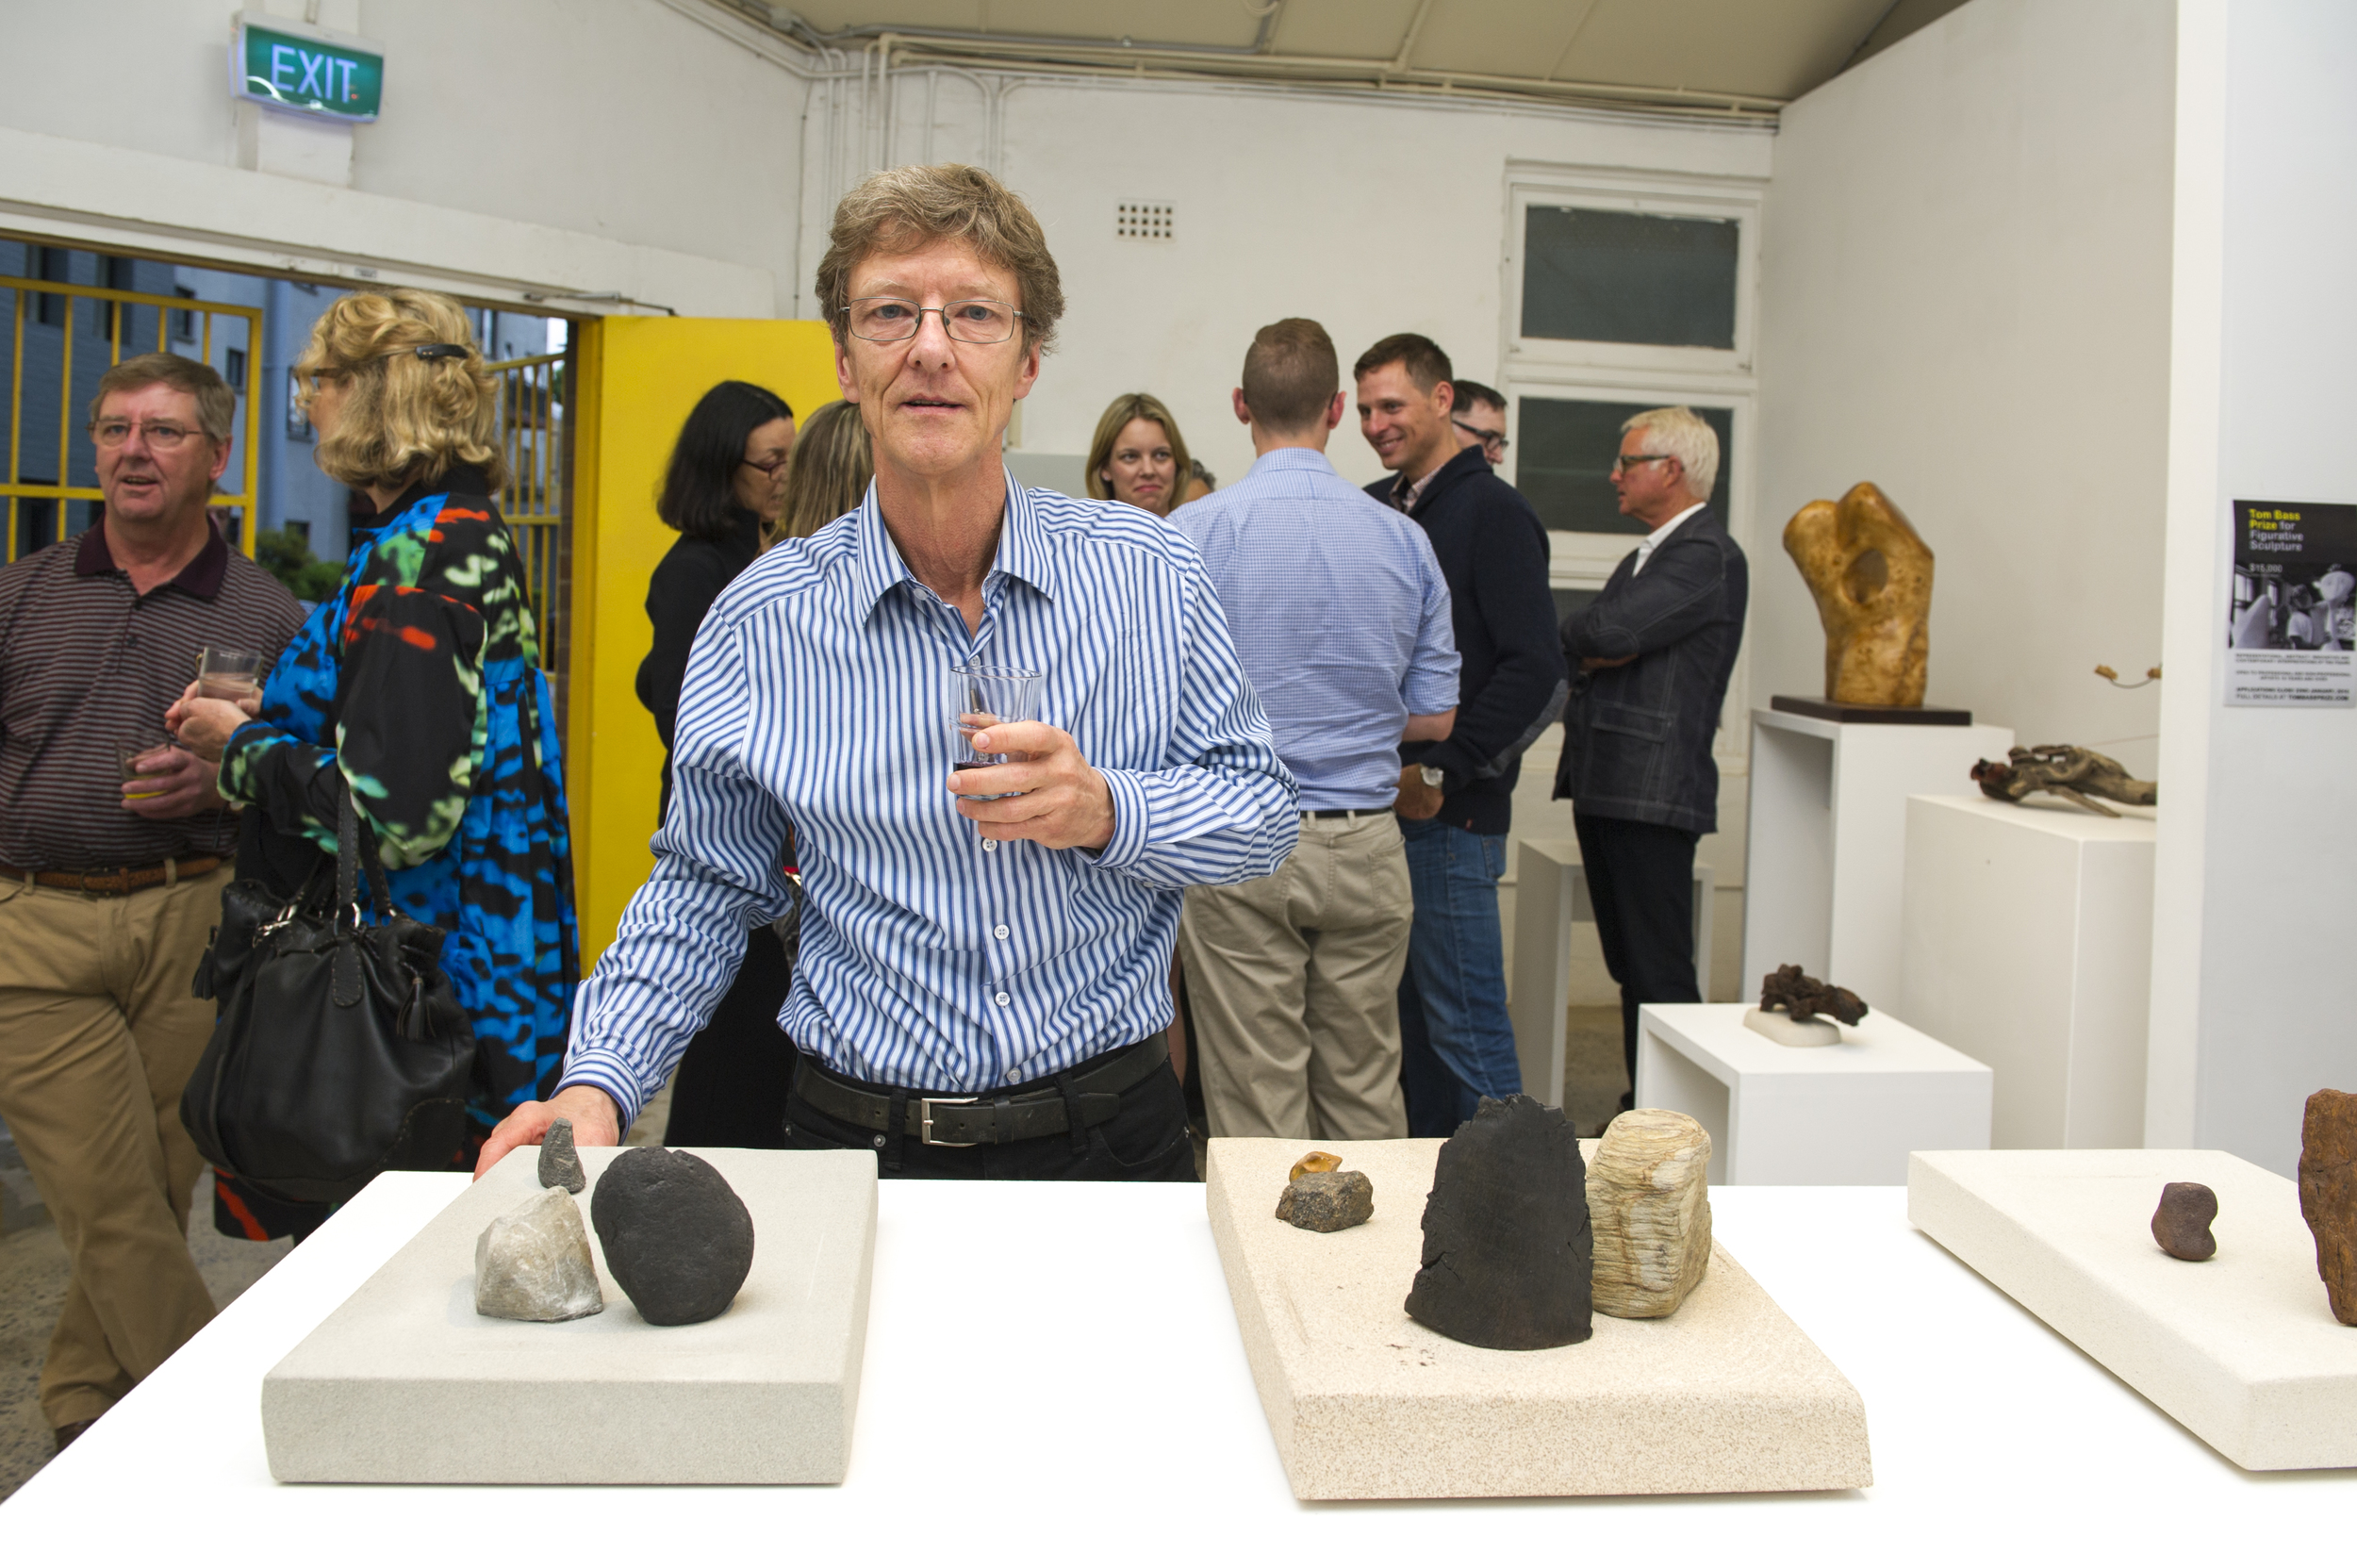 Copy of The sculptor Simon Gandevia at his opening.